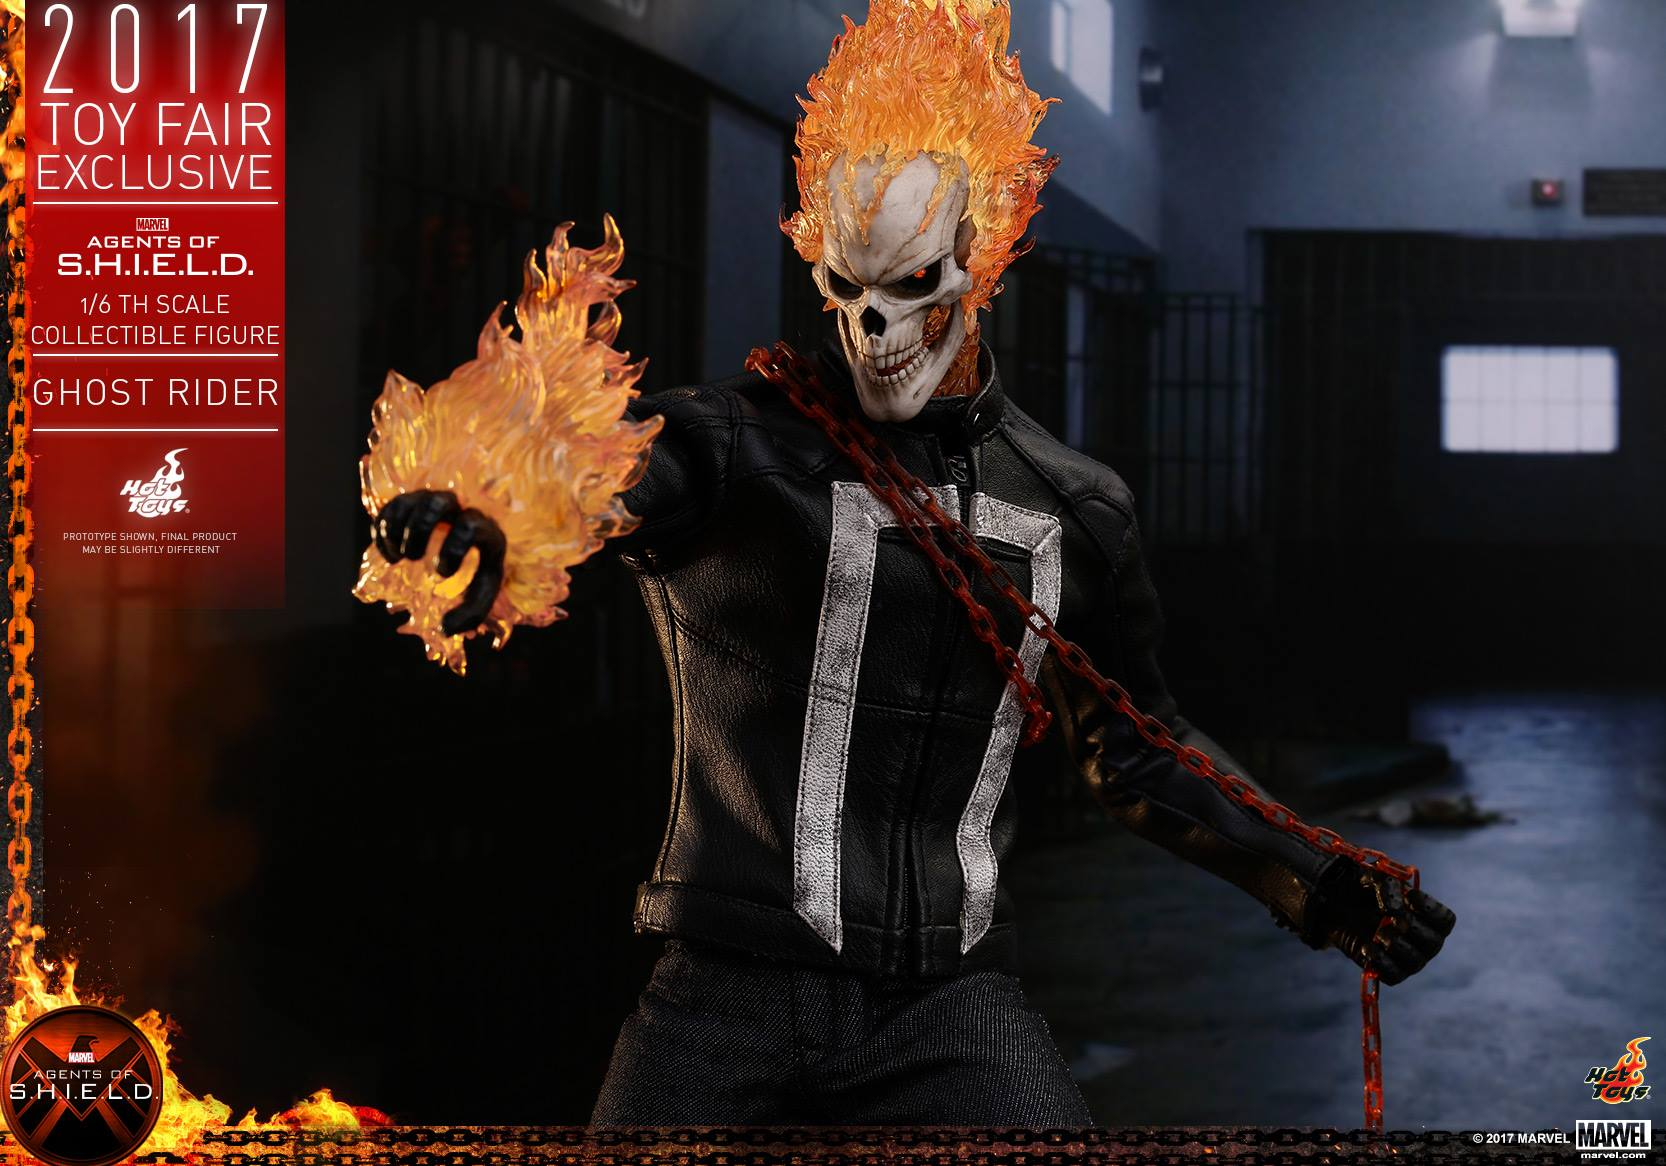 Hot Toys Agents of SHIELD Ghost Rider figure - Lyles Movie Files